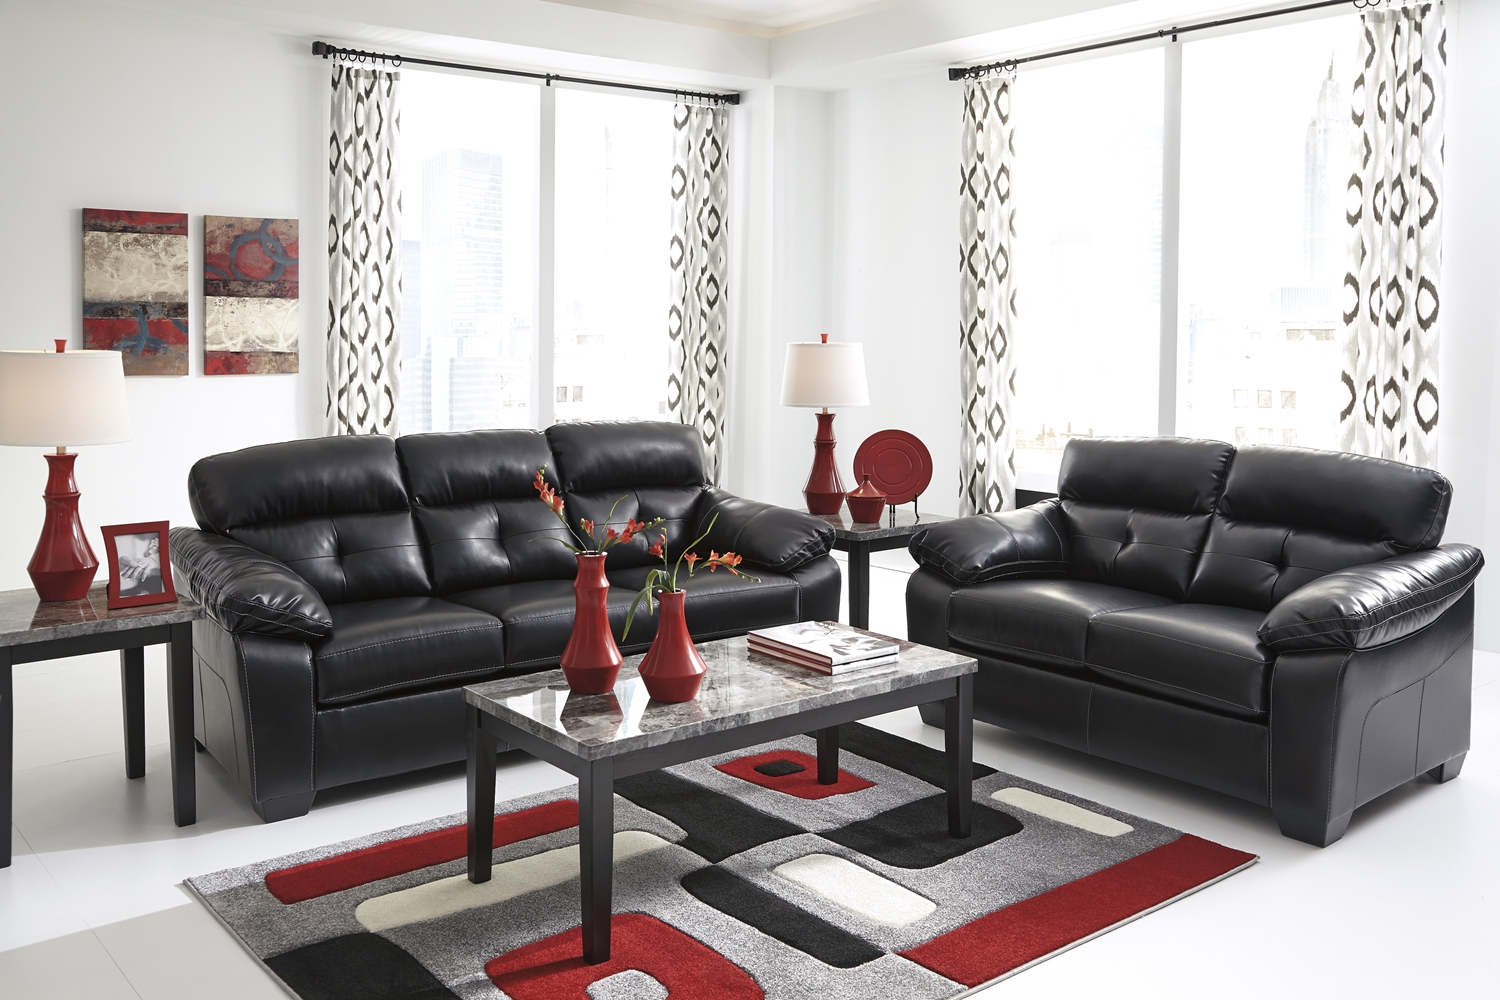 Furniture purchases can involve important decisions. Midnight Black Casual Contemporary Living Room Furniture ...